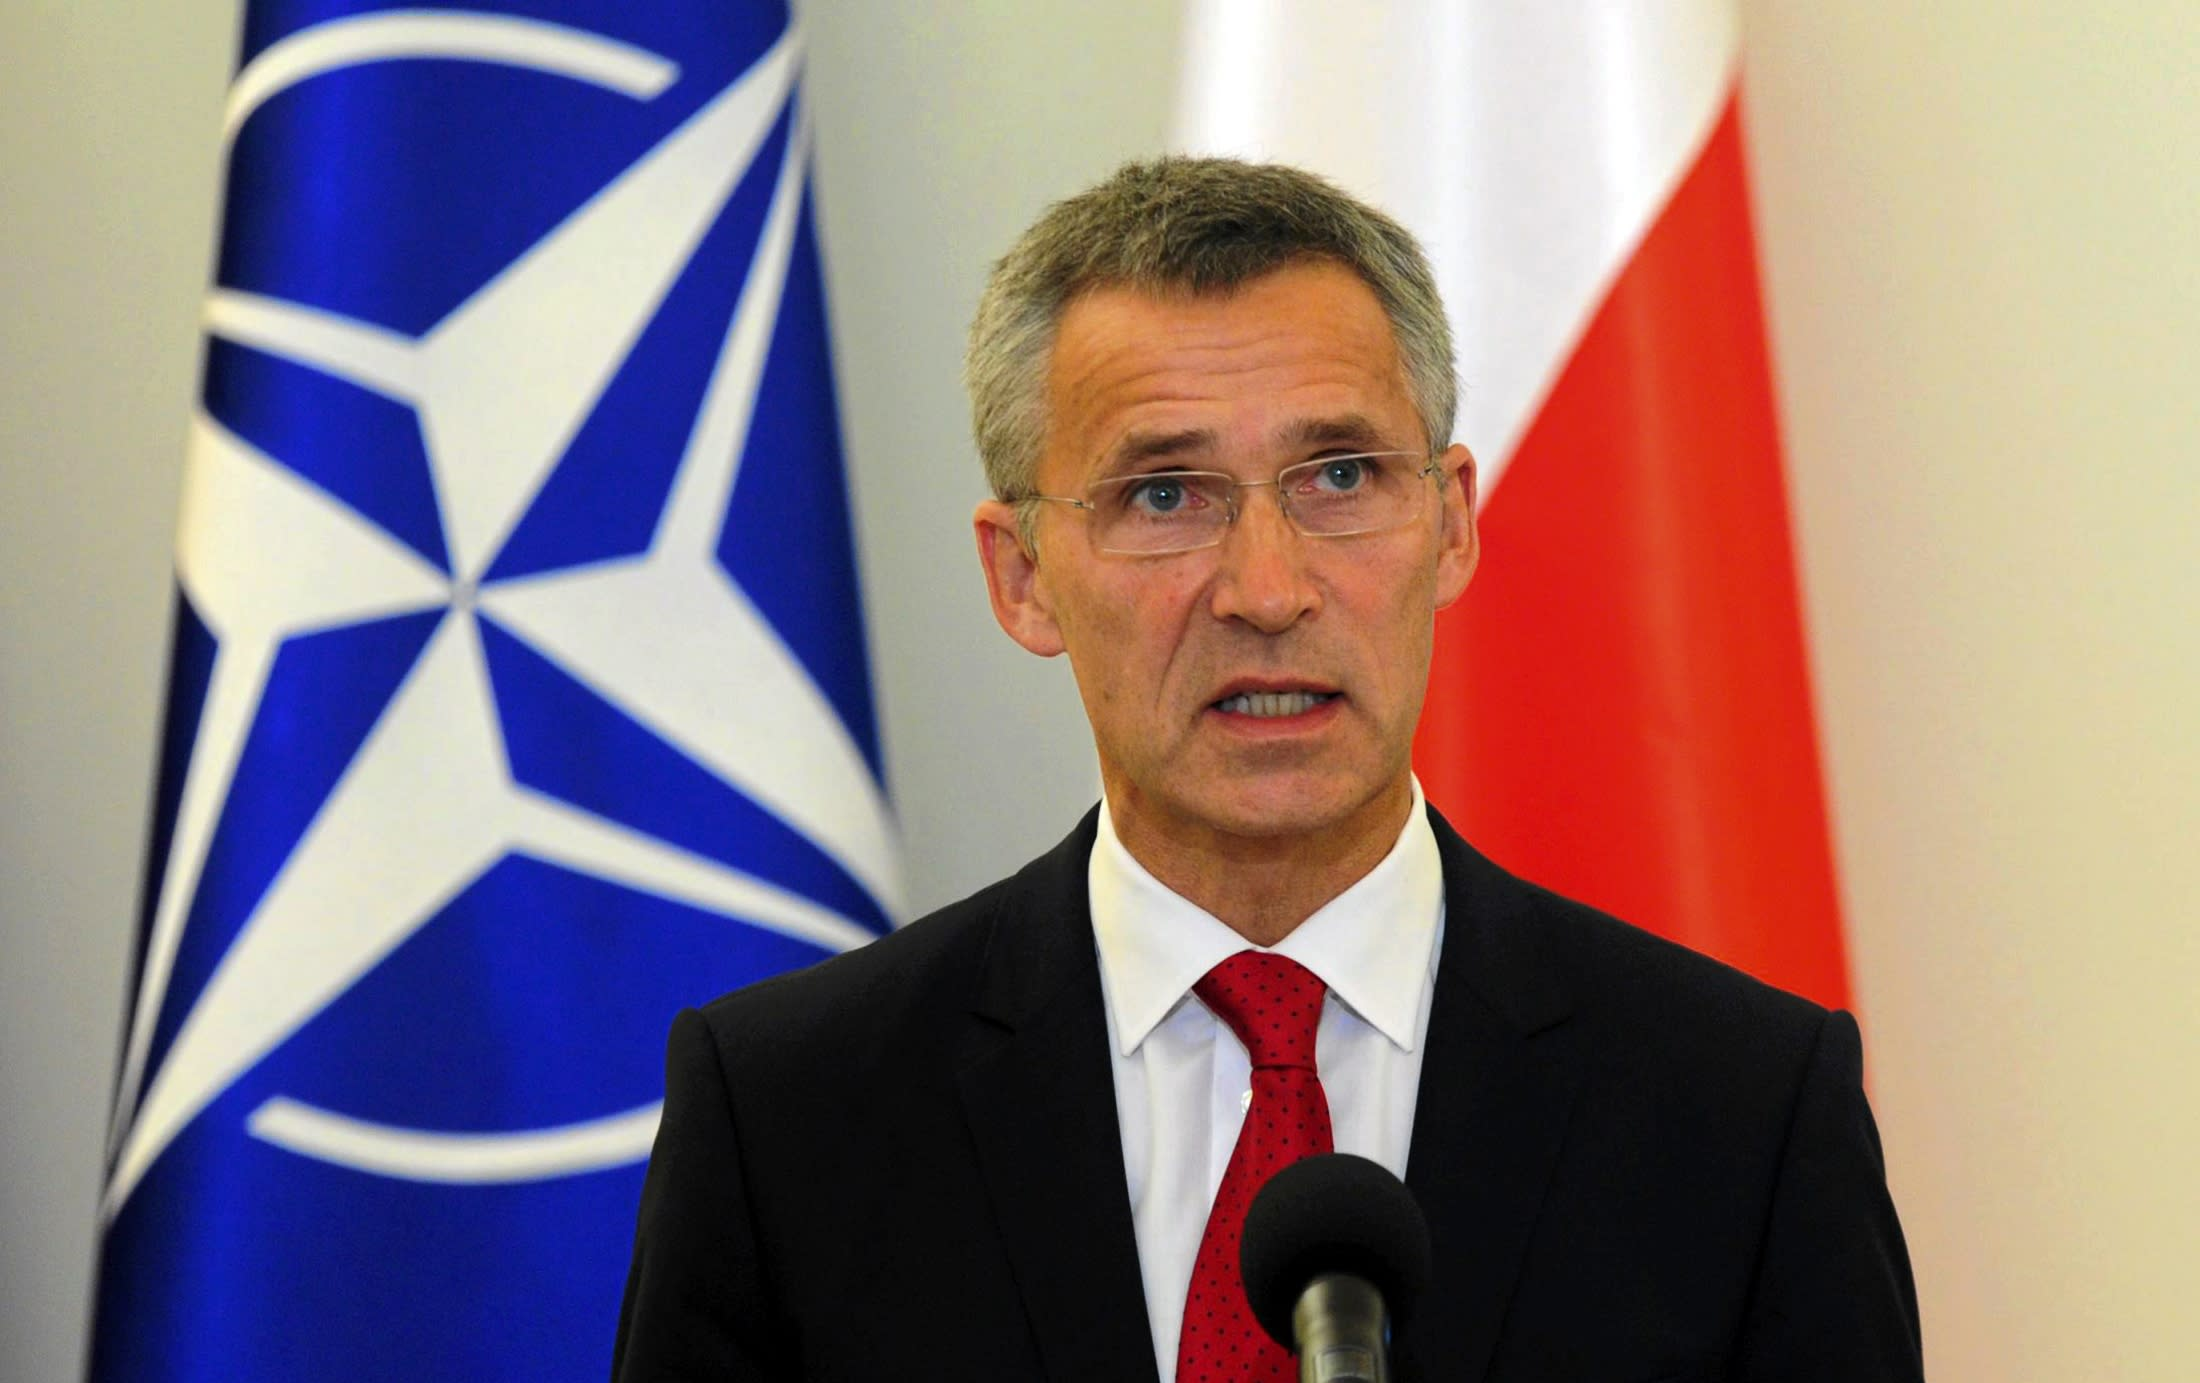 New NATO Secretary-General Stoltenberg of Norway addresses media at the Presidential Palace in Warsaw